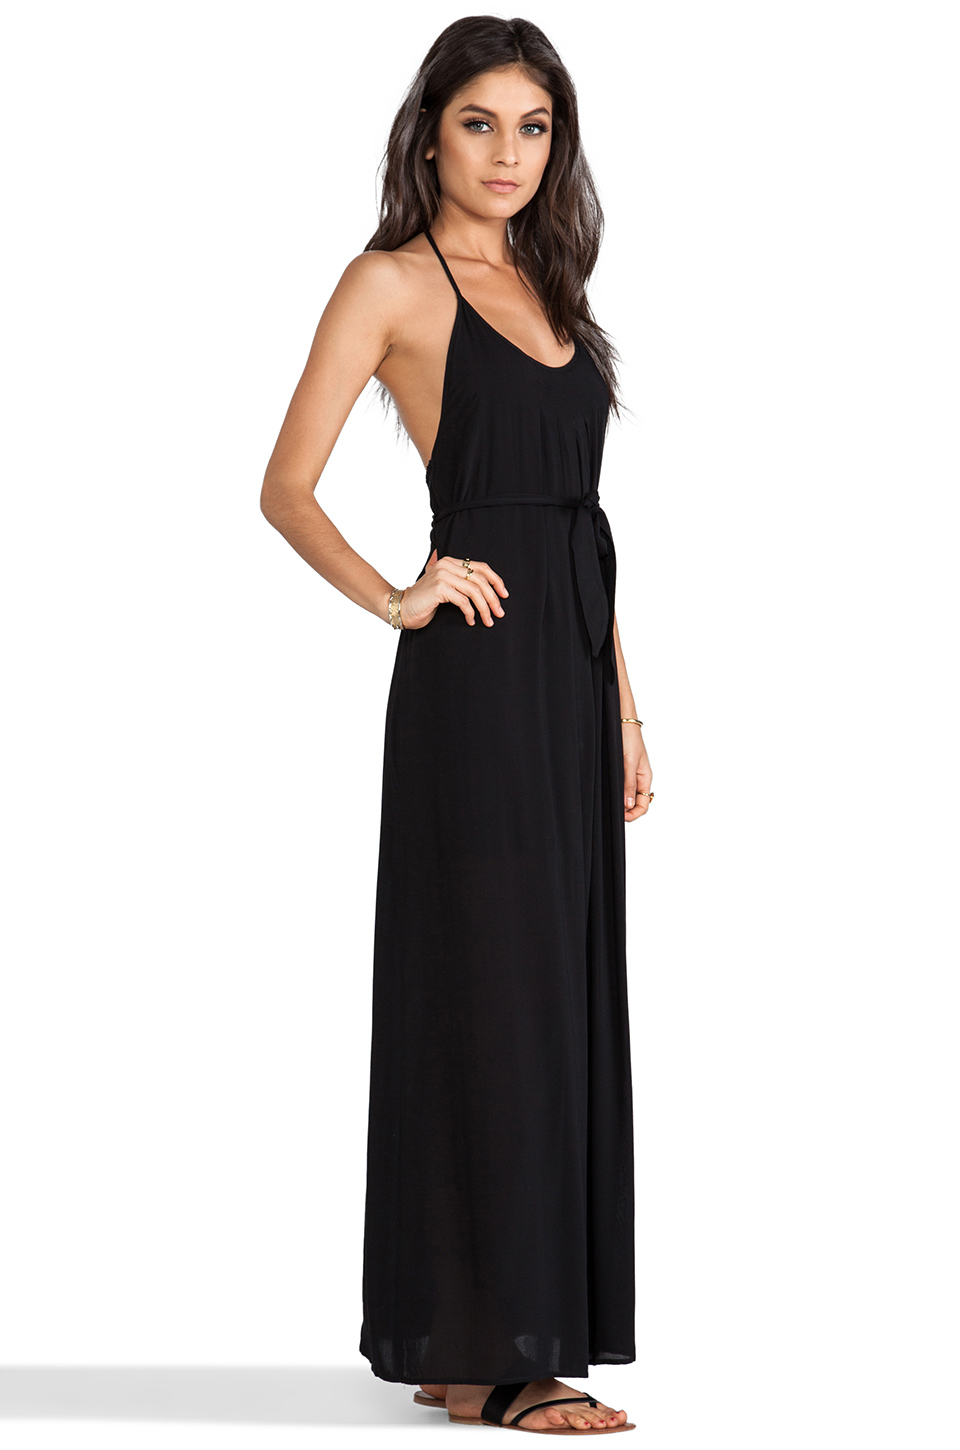 WOODLEIGH EXCLUSIVE Veve Maxi Dress in Black